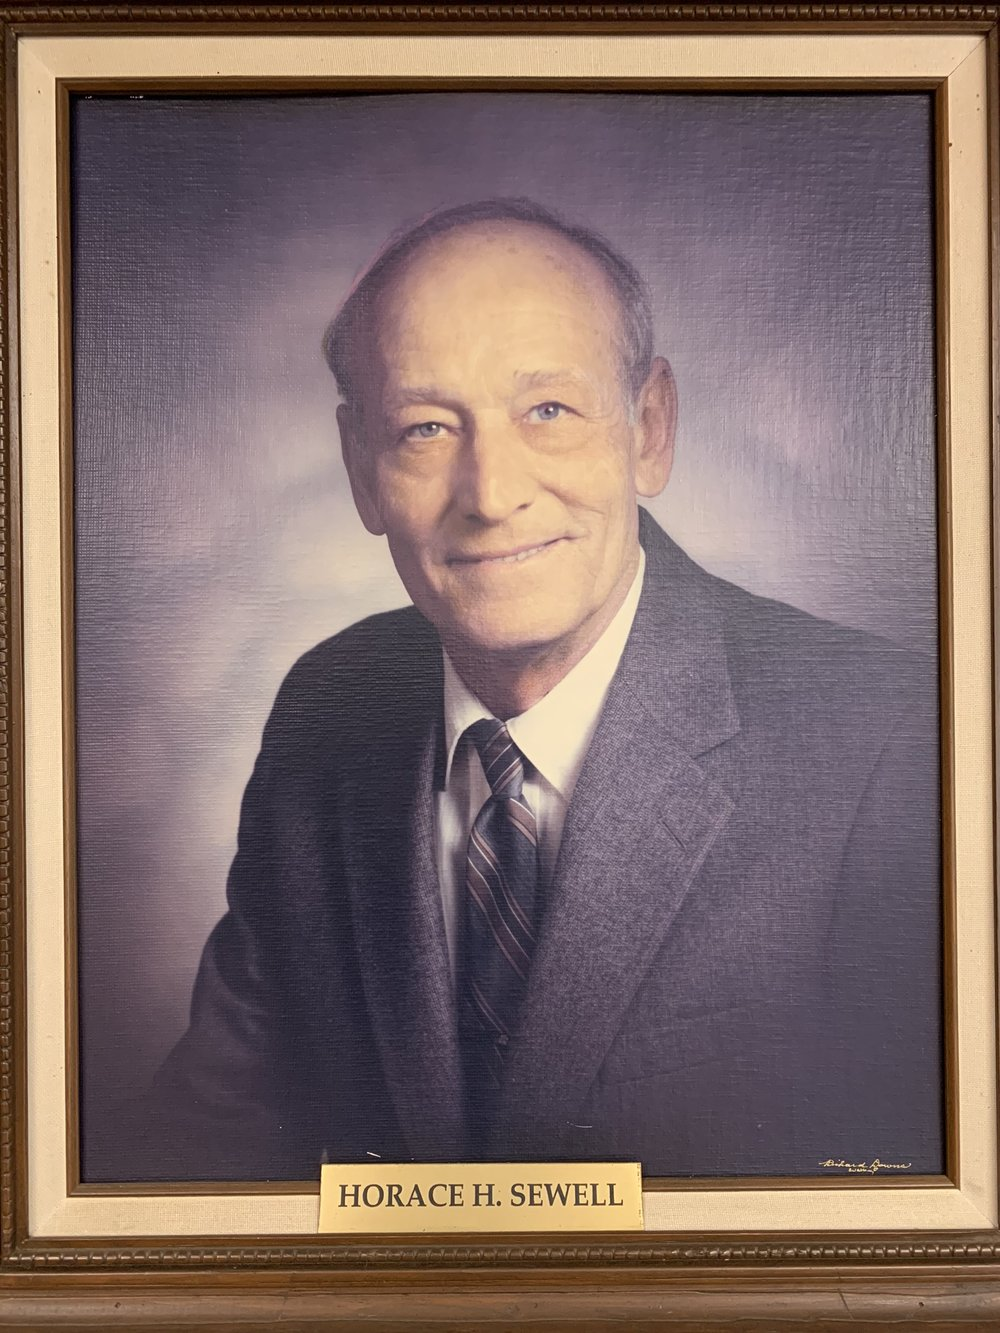 Horace Sewell (1927-2011) - founder of Quality Switch, Inc.